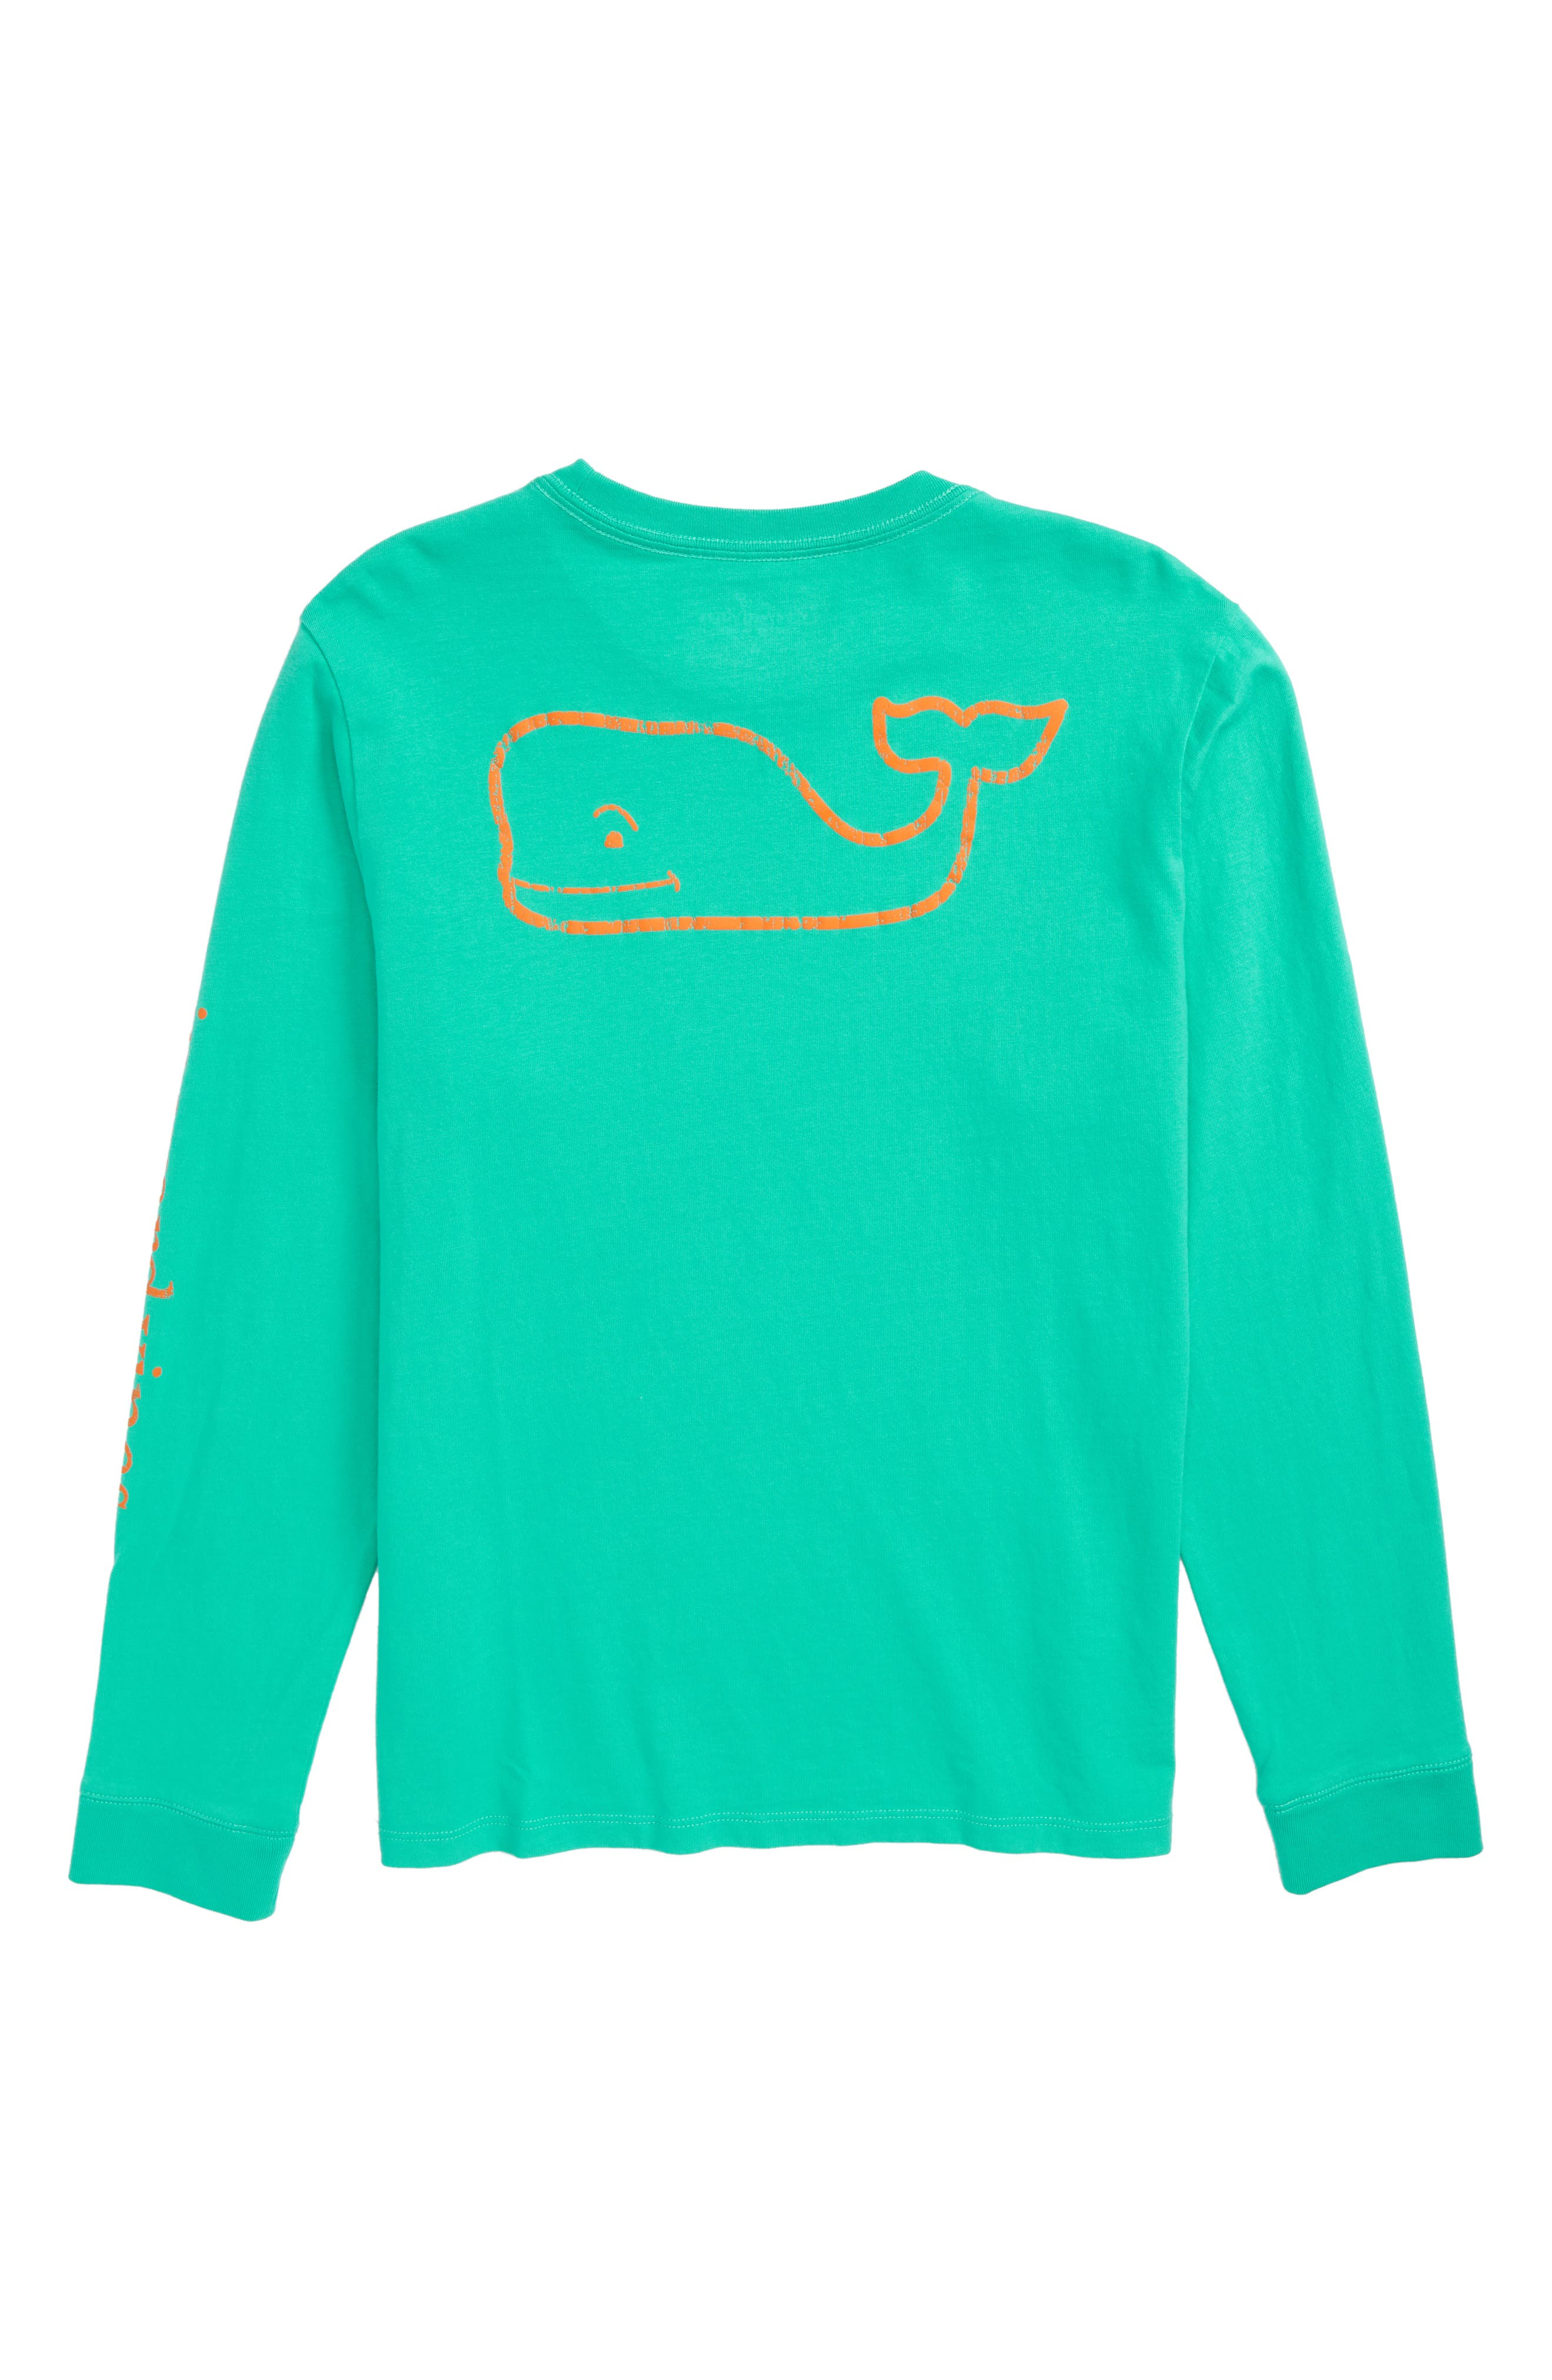 Vintage Whale Graphic Long Sleeve T-Shirt,                             Alternate thumbnail 3, color,                             Caribbean Green